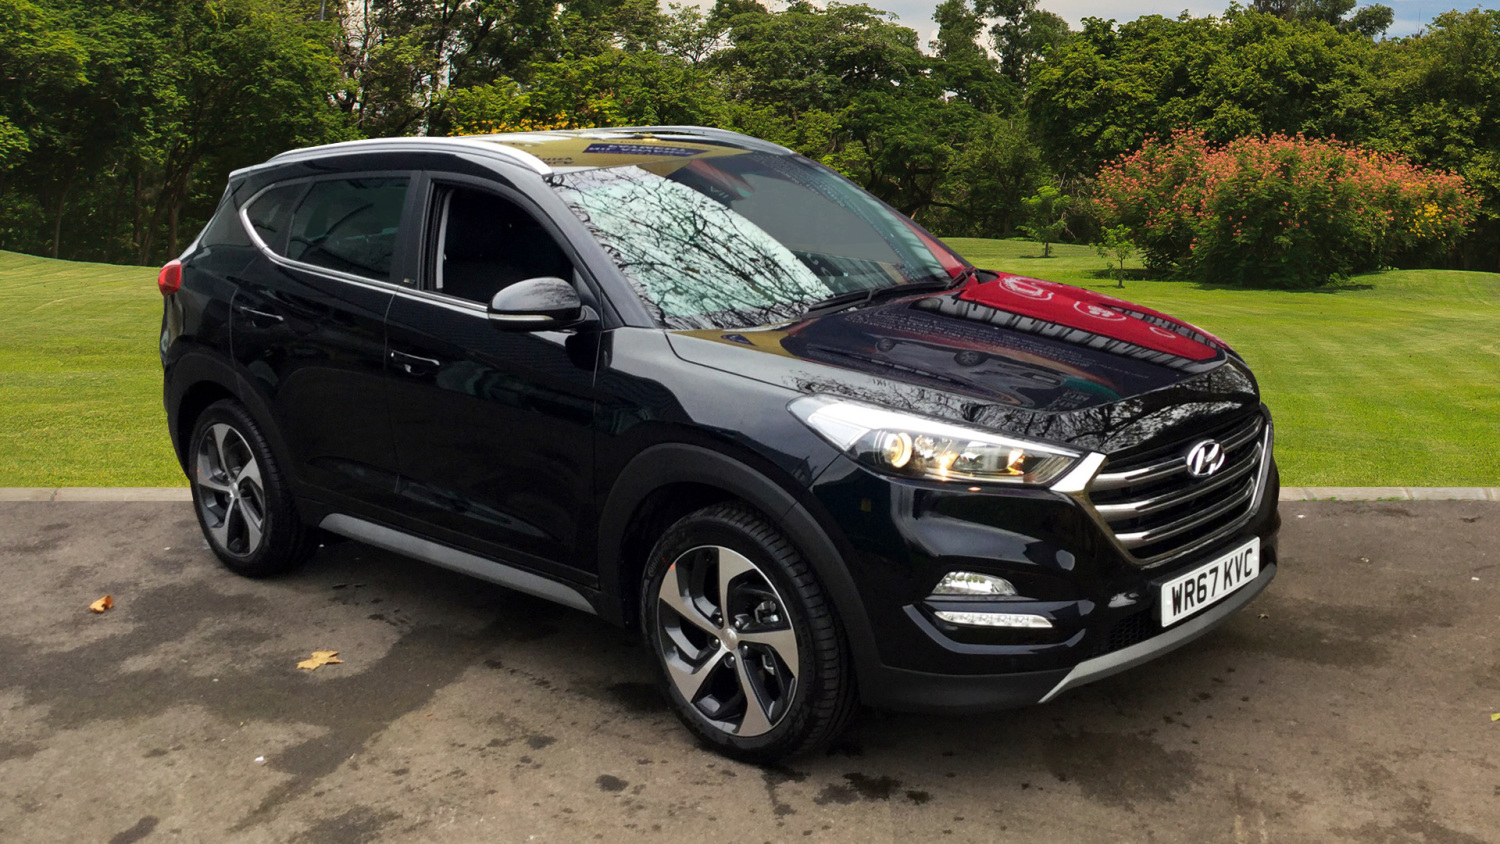 used hyundai tucson 1 6 tgdi sport edition 5dr 2wd dct petrol estate for sale bristol street. Black Bedroom Furniture Sets. Home Design Ideas